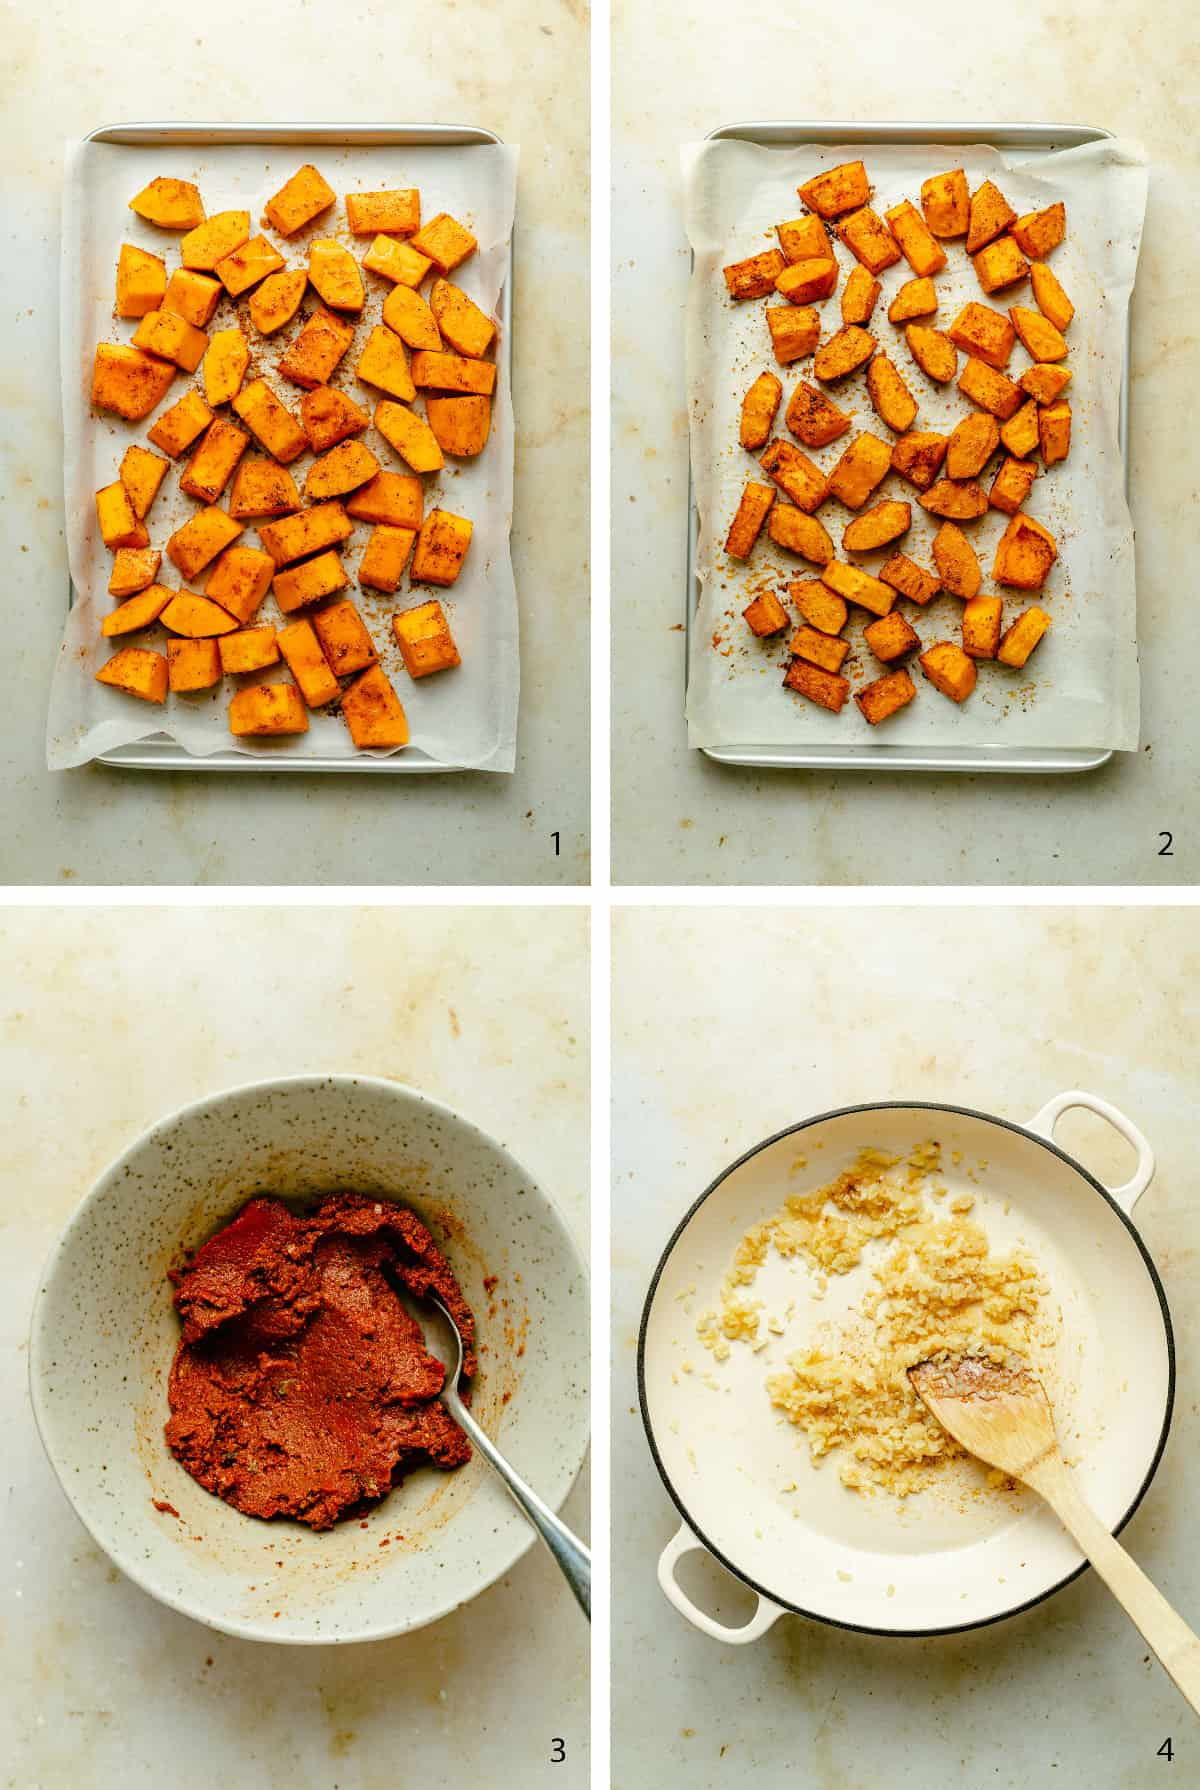 Process photos of roasted butternut squash and curry paste being made.